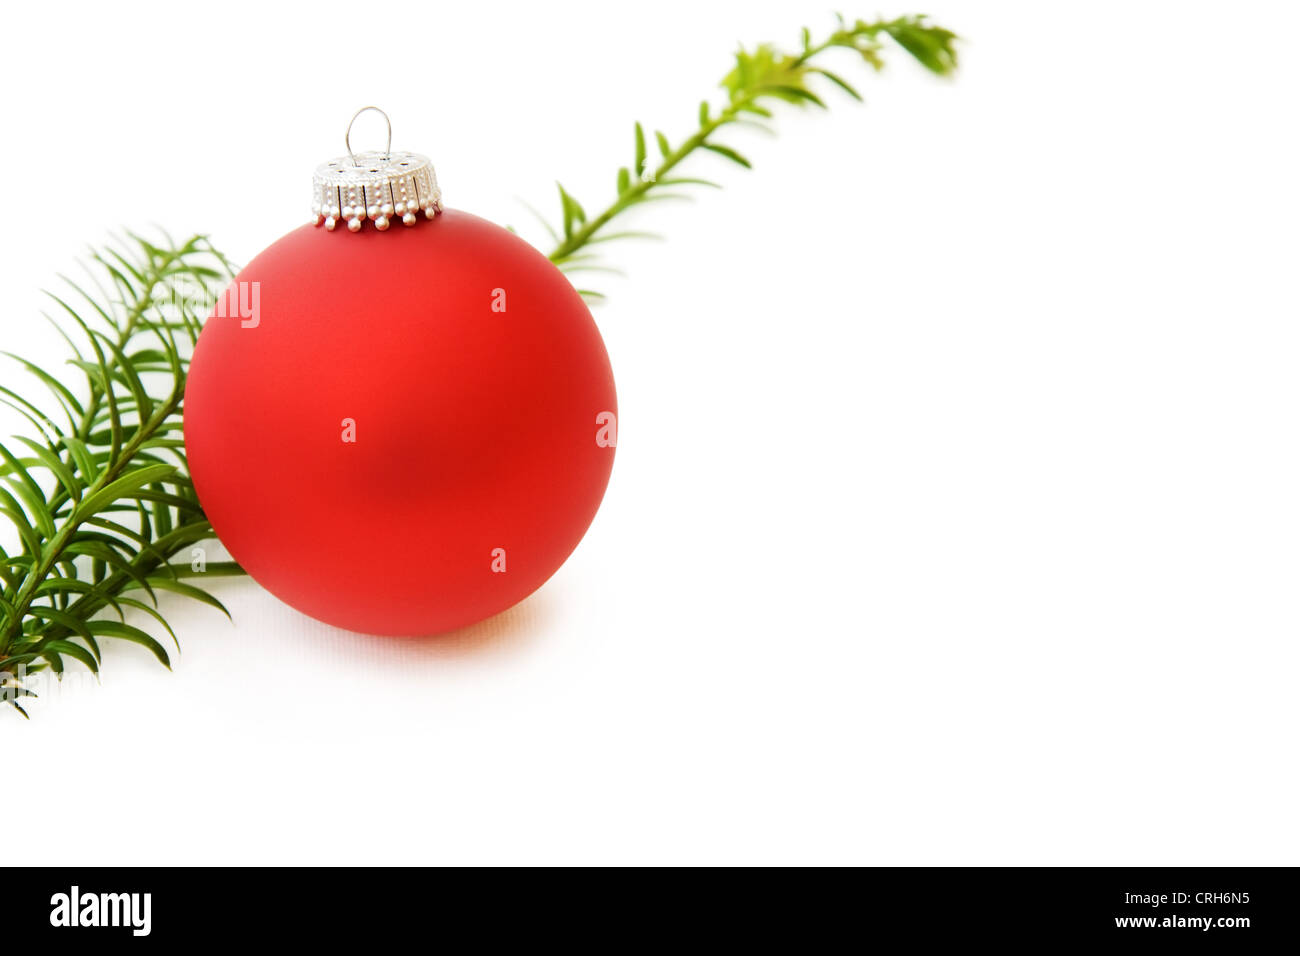 Celebrating Christmas with traditional red bauble and pine tree branch. Isolated on white background. - Stock Image